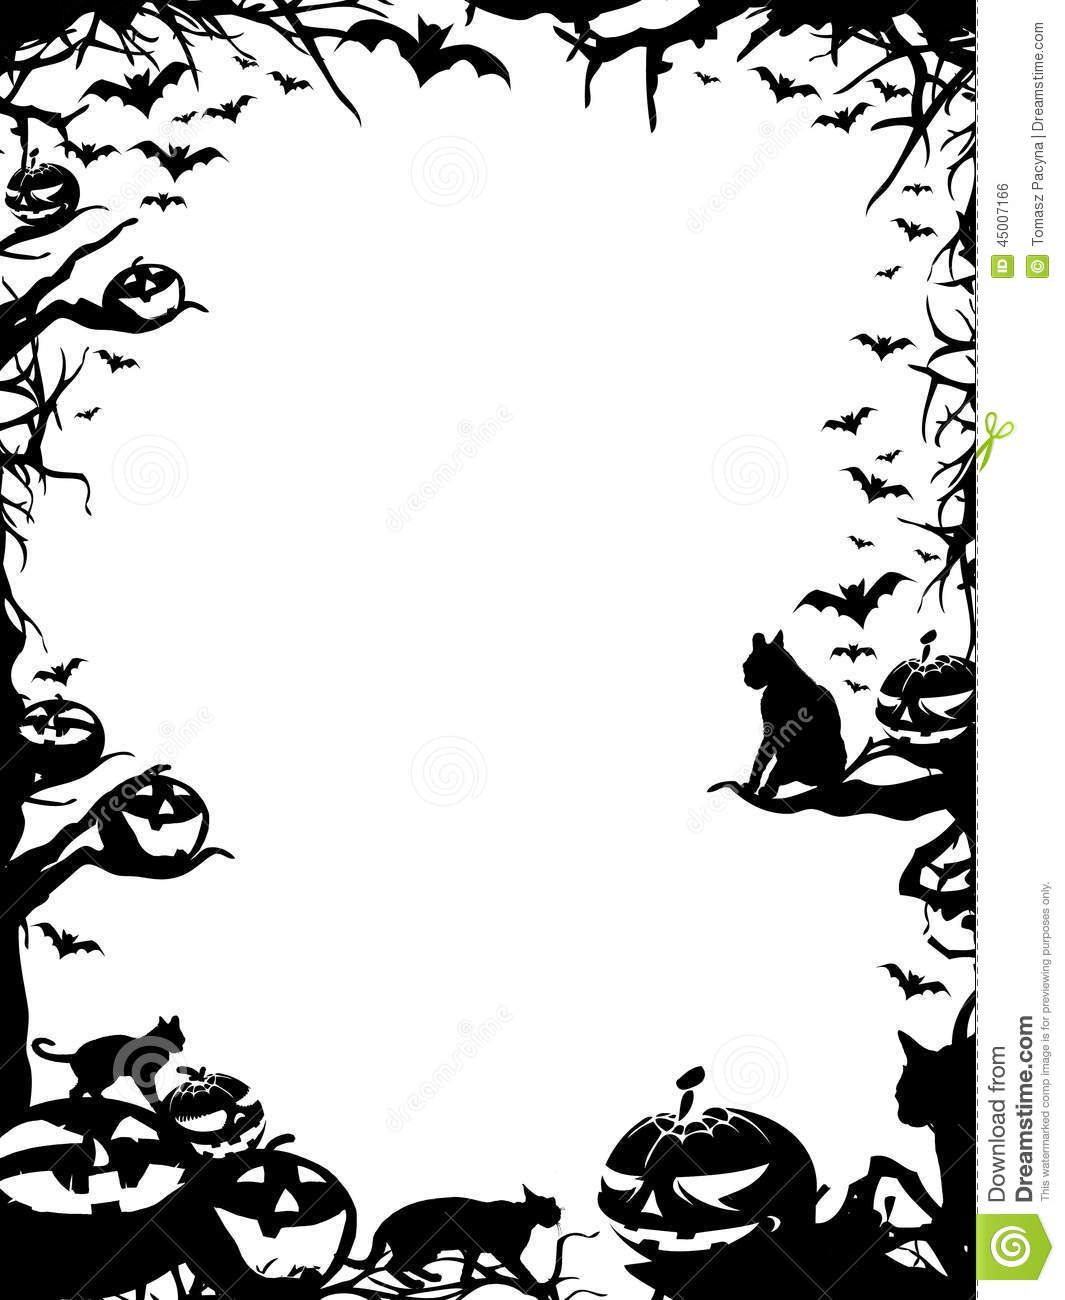 graphic about Free Printable Halloween Borders named 25+ Black Clip Artwork Spooky Scenery Shots and Recommendations upon